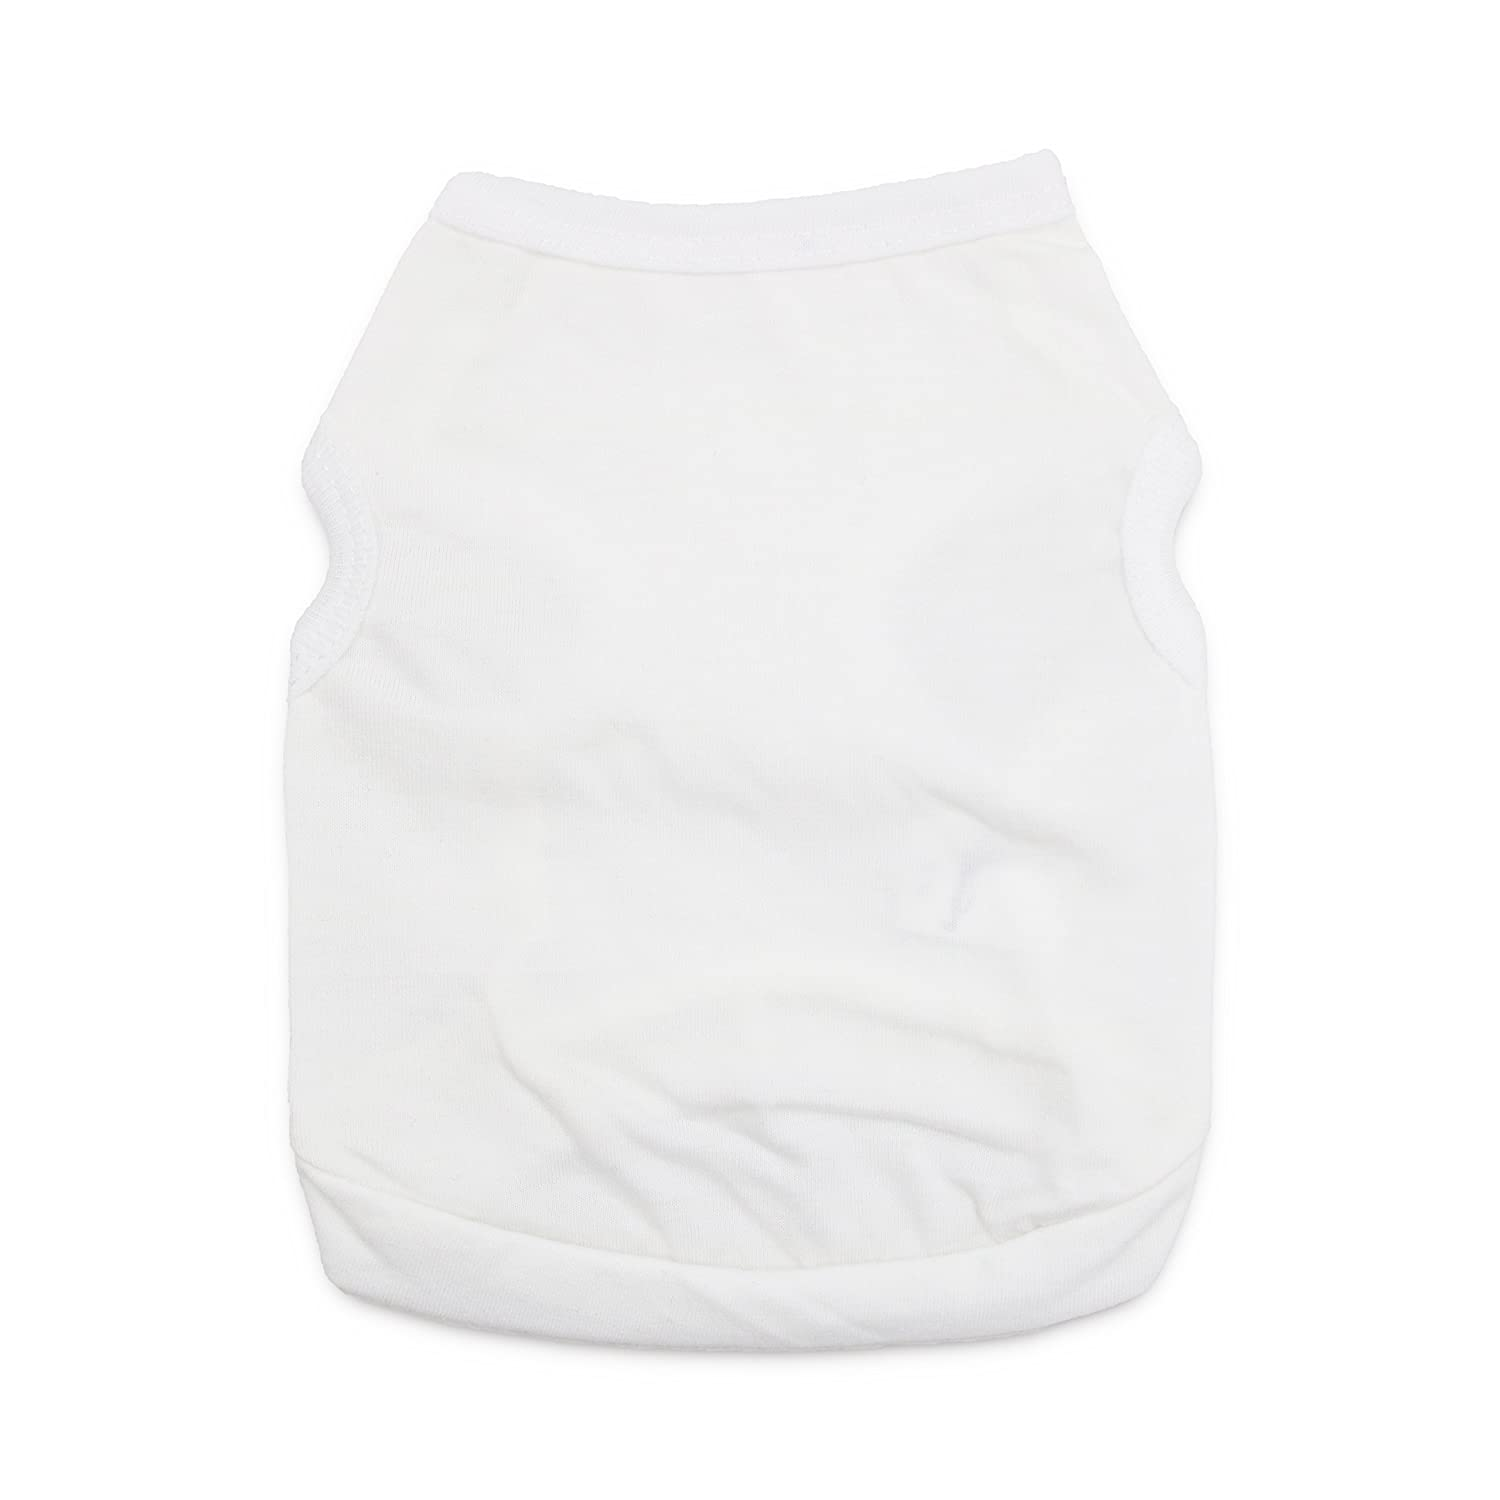 DroolingDog Pet Dog Clothes White Dog T-Shirt Medium Cat Clothes for Small Dogs, Medium, White